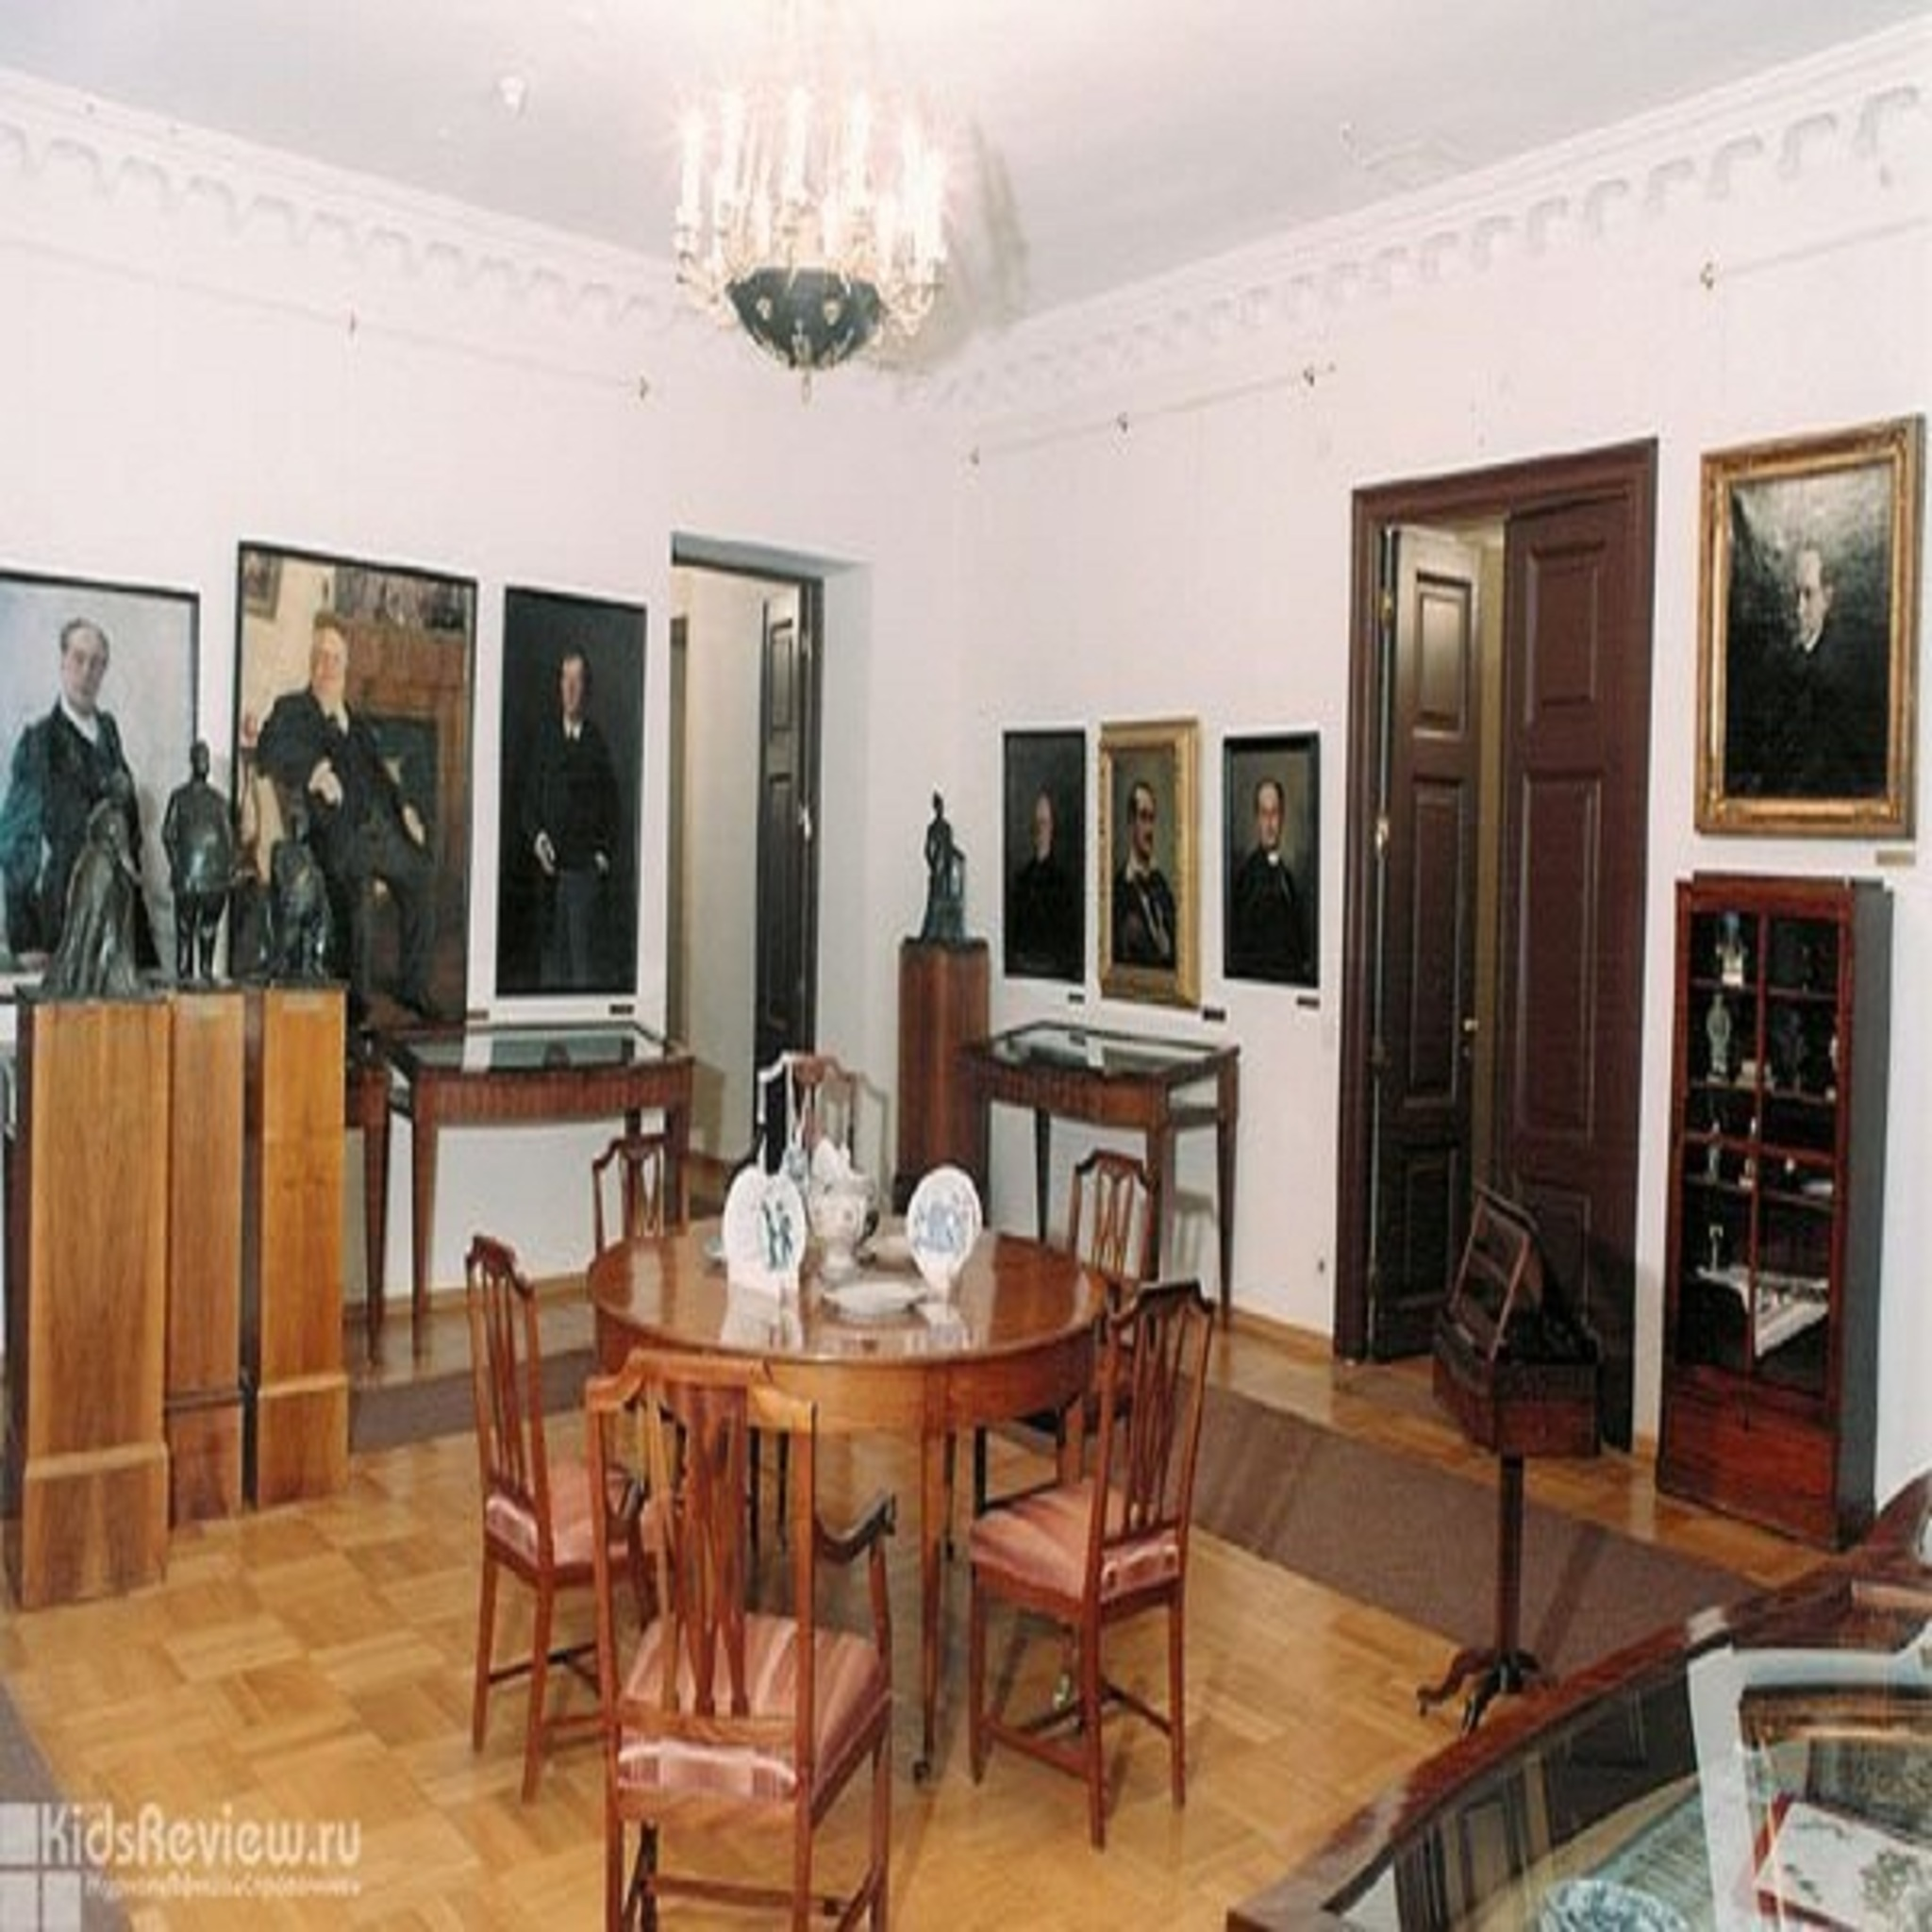 The exhibition People's artist. To the 90-th anniversary of the Kirill Lavrov